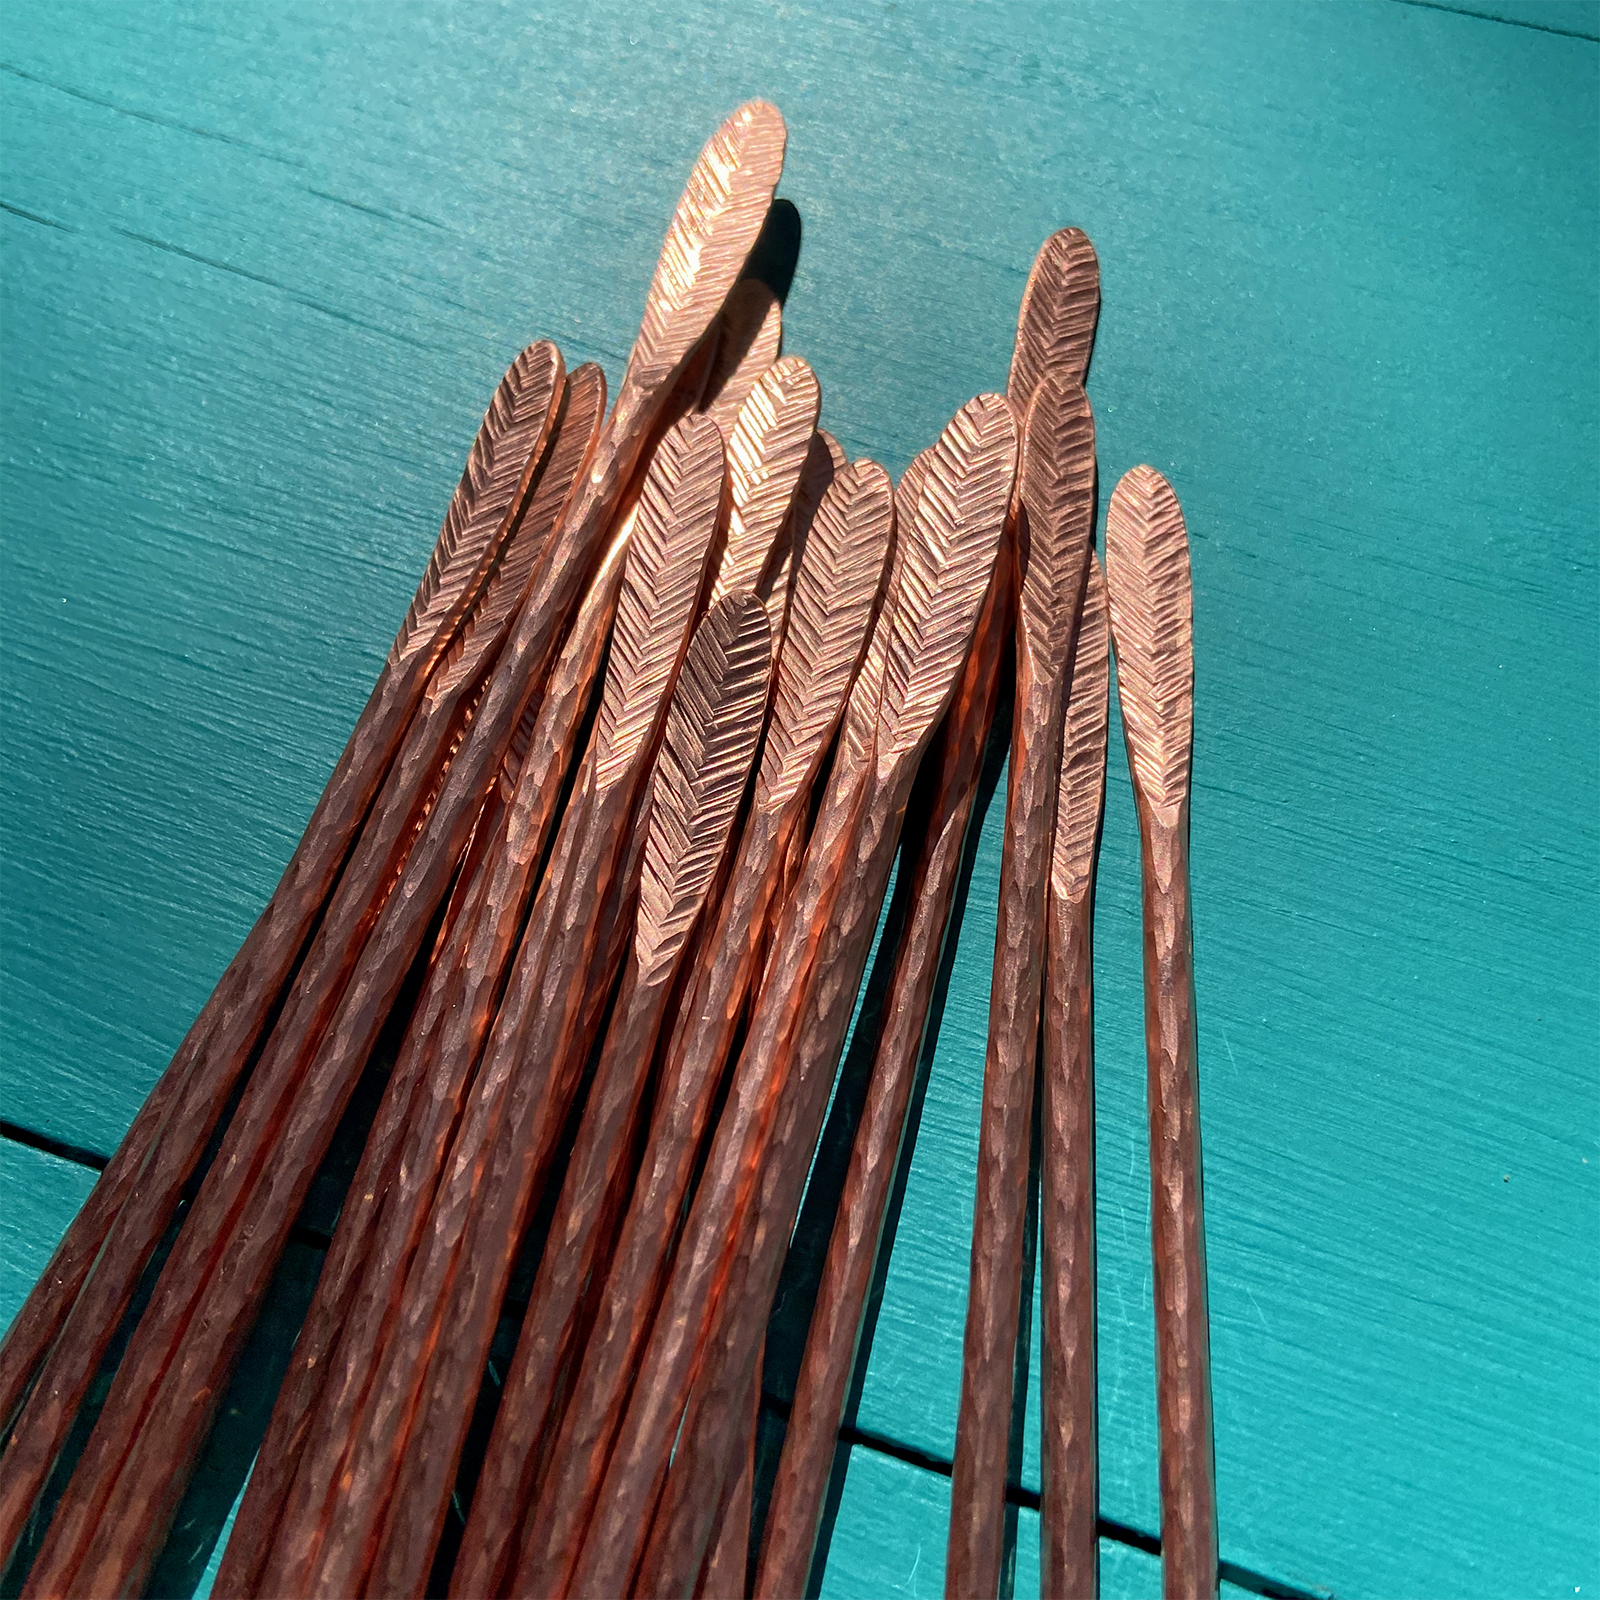 Feather ends of cocktail stirrers